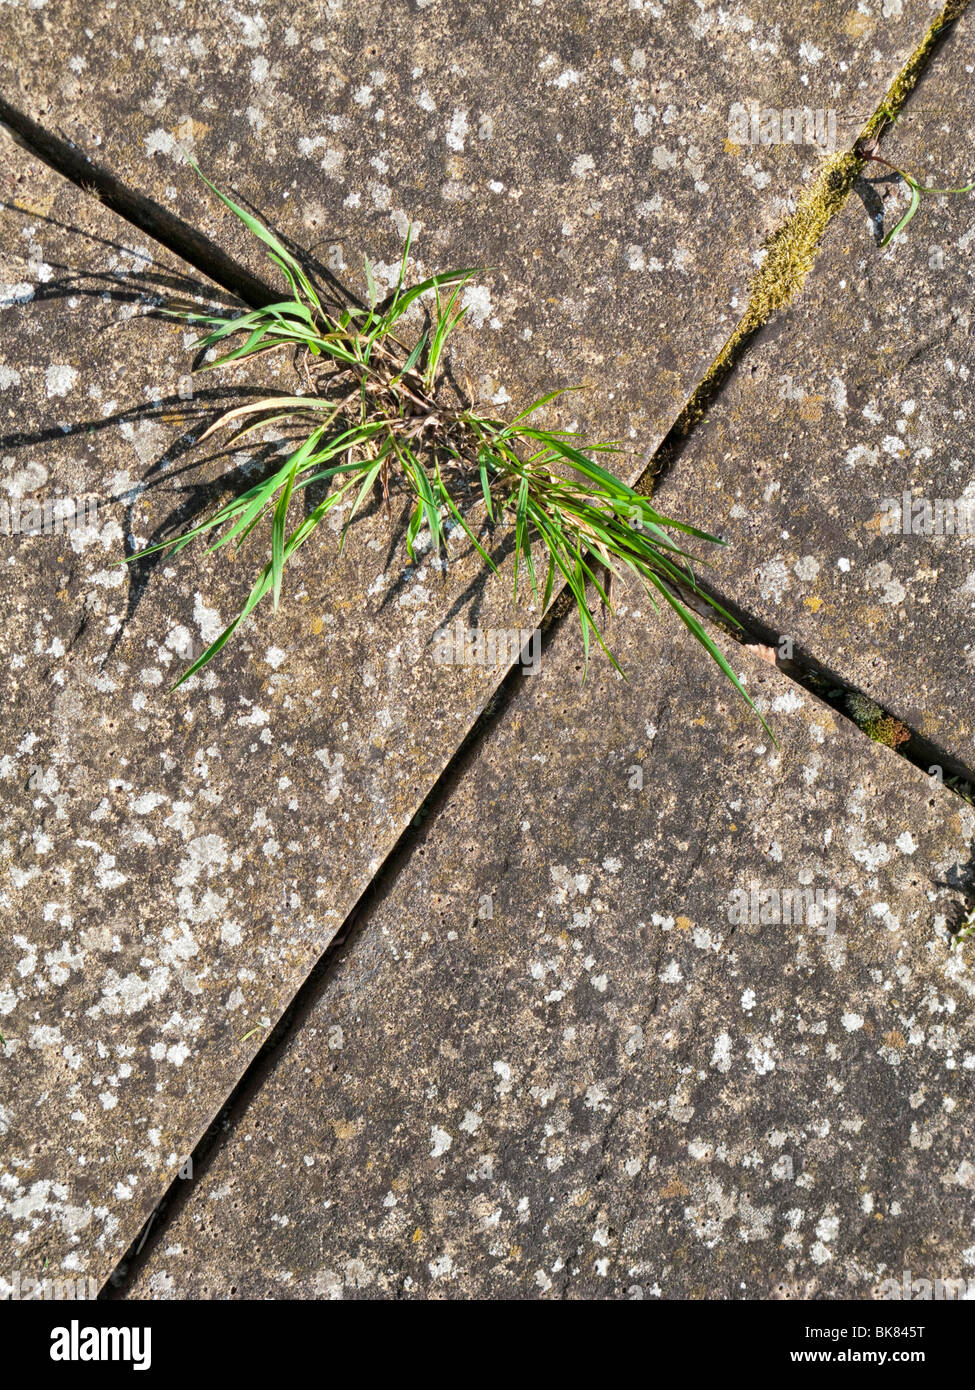 Common weeds growing in the cracks between paving slabs - Stock Image